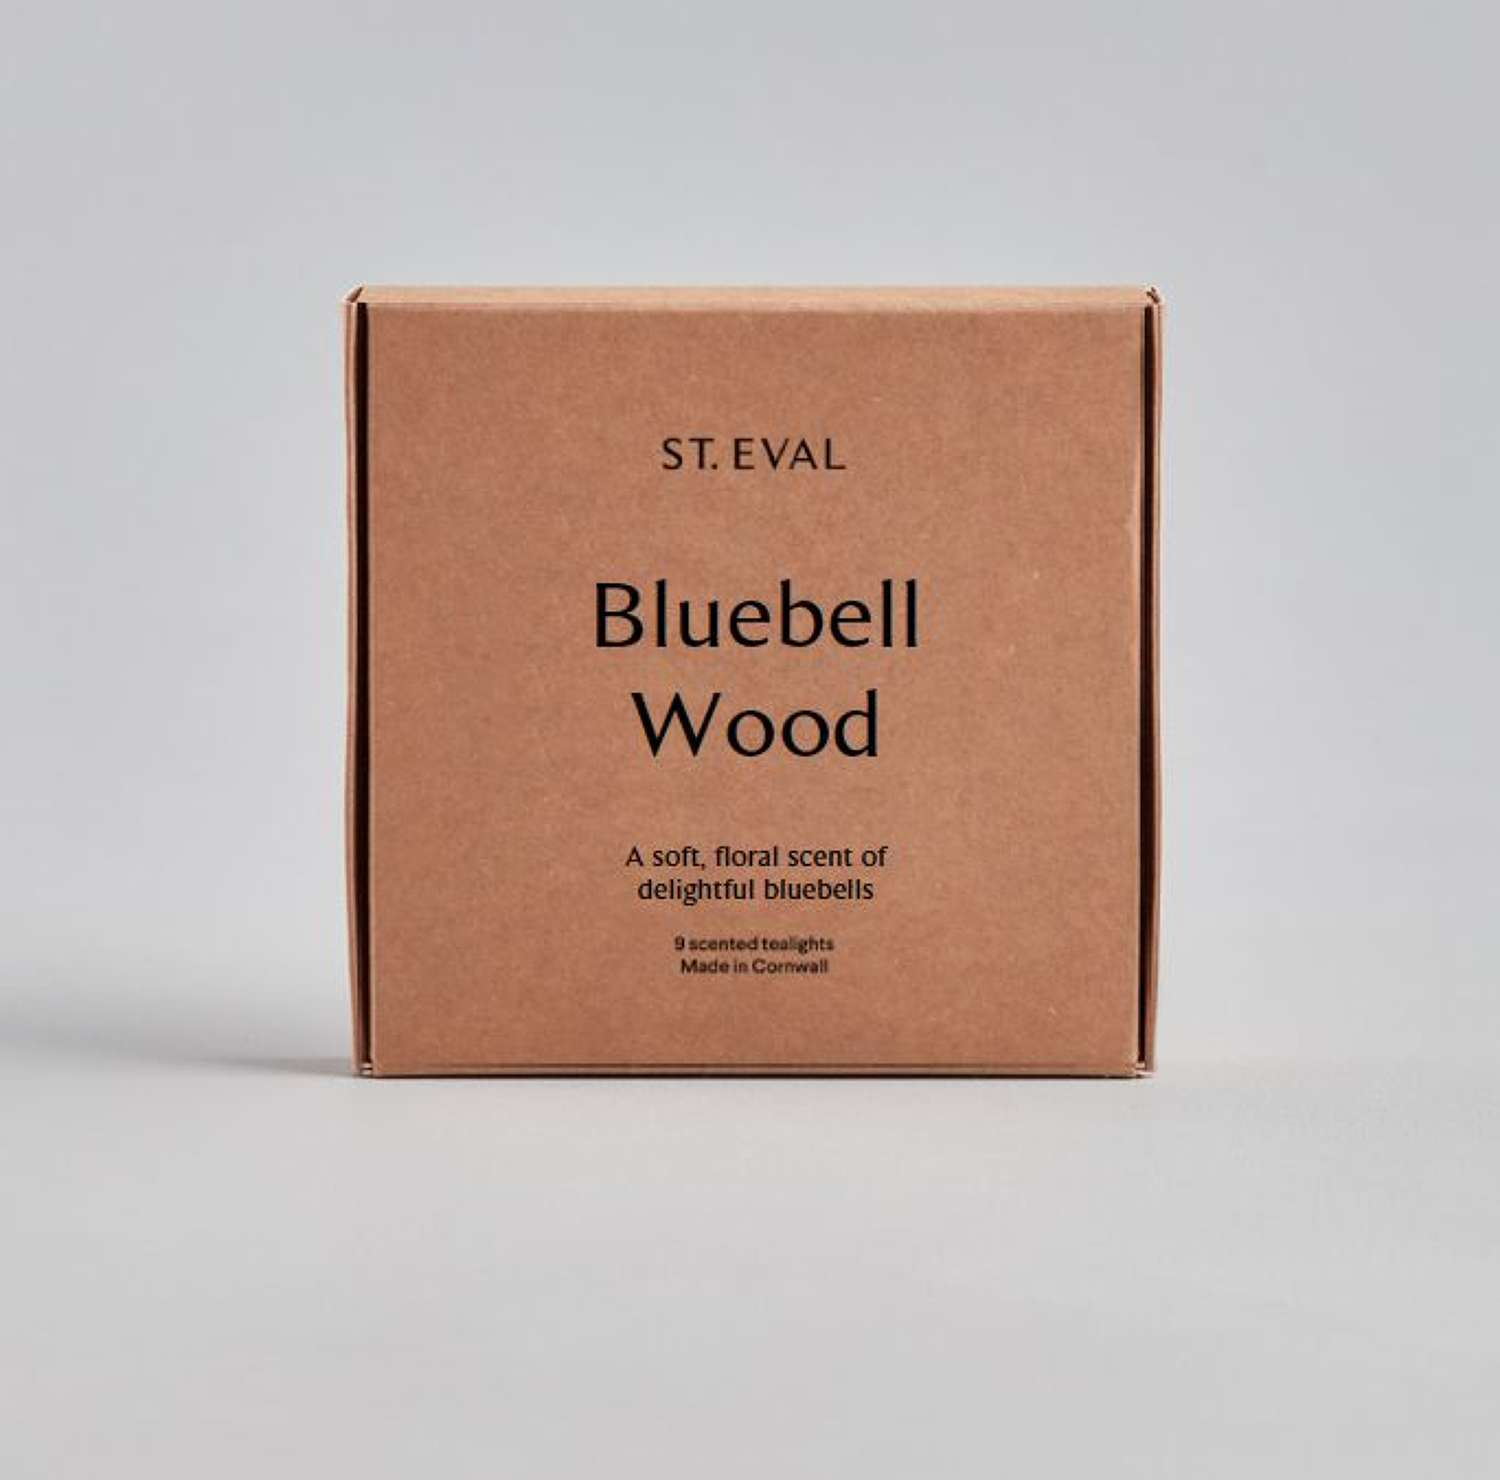 St Eval - Bluebell Wood Scented Tealights